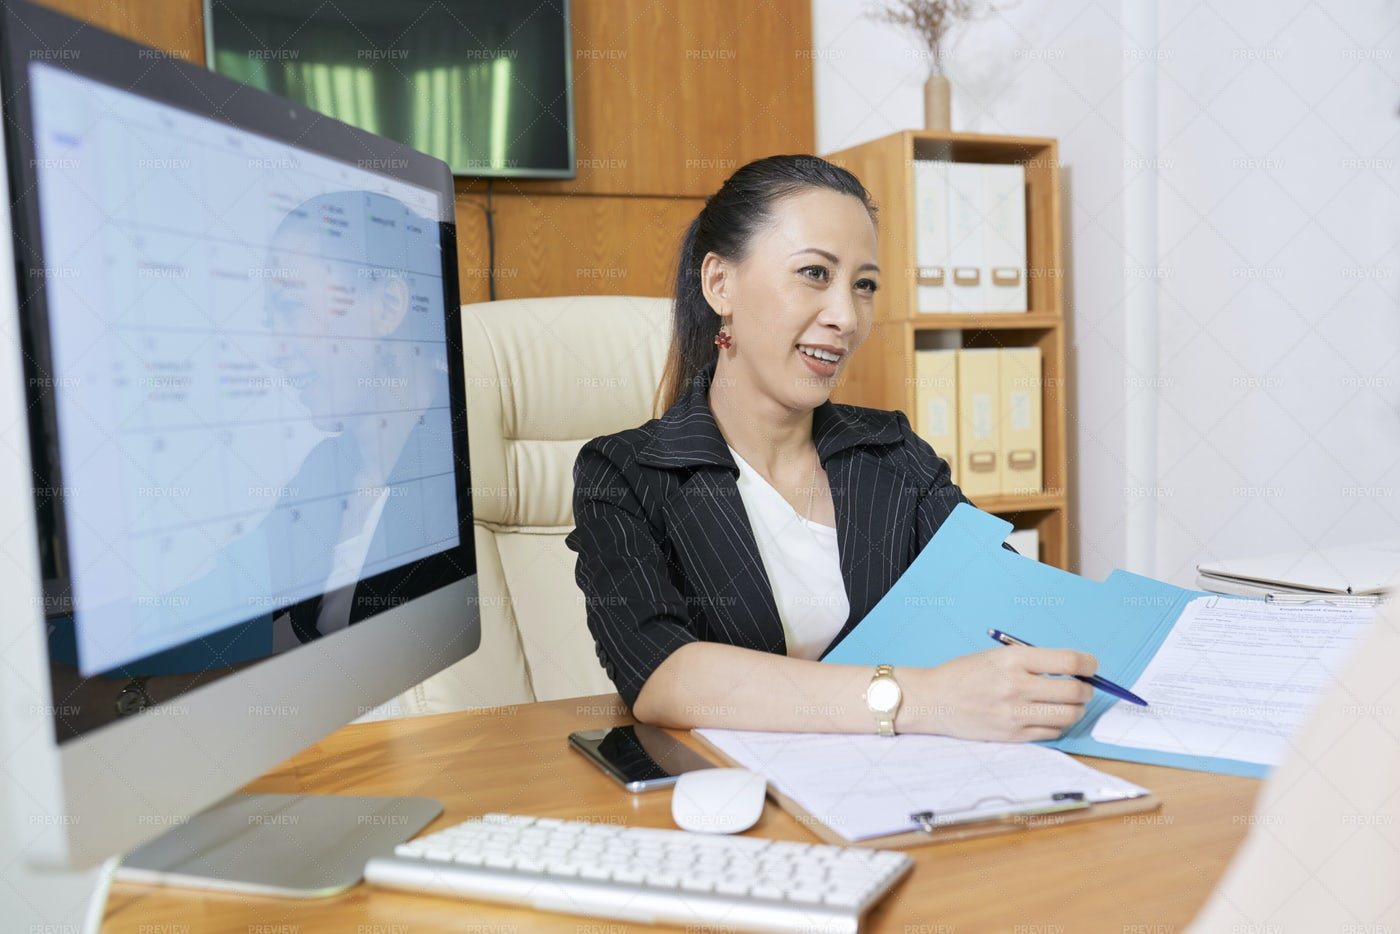 Businesswoman Working With Contract At: Stock Photos